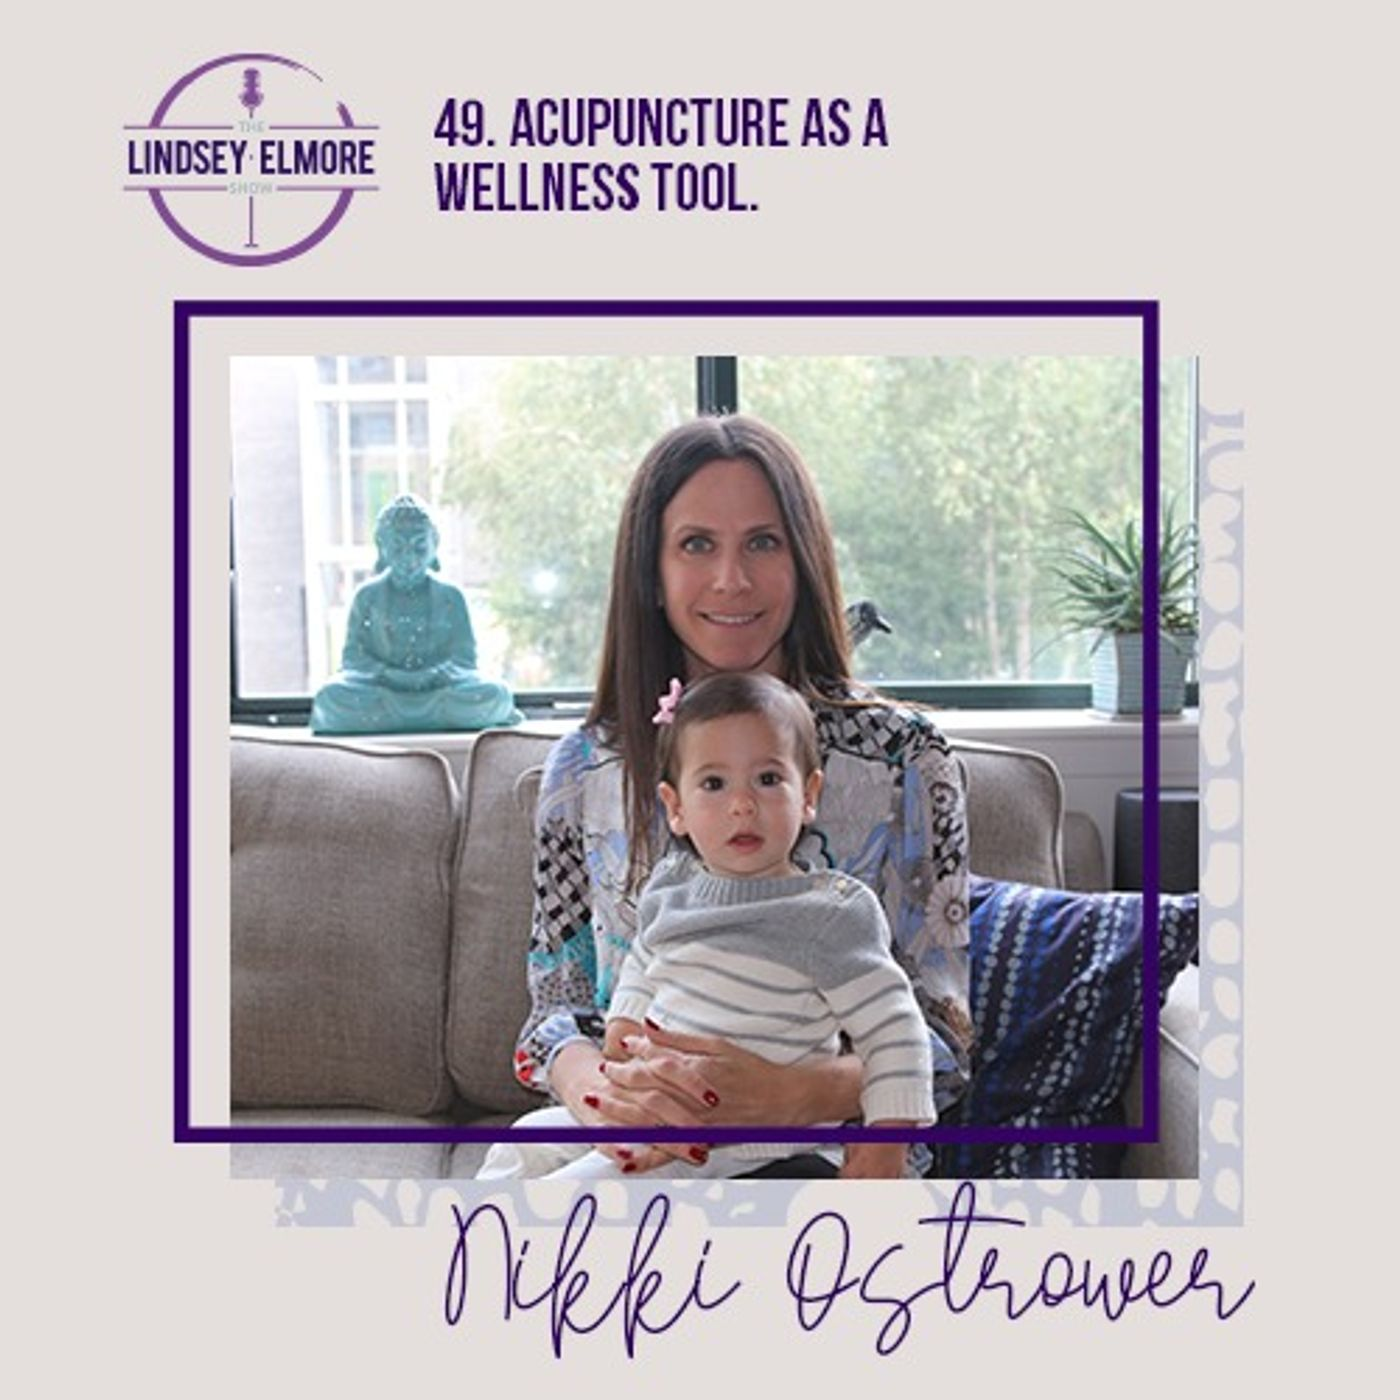 Acupuncture as a wellness tool. An interview with Nikki Ostrower.